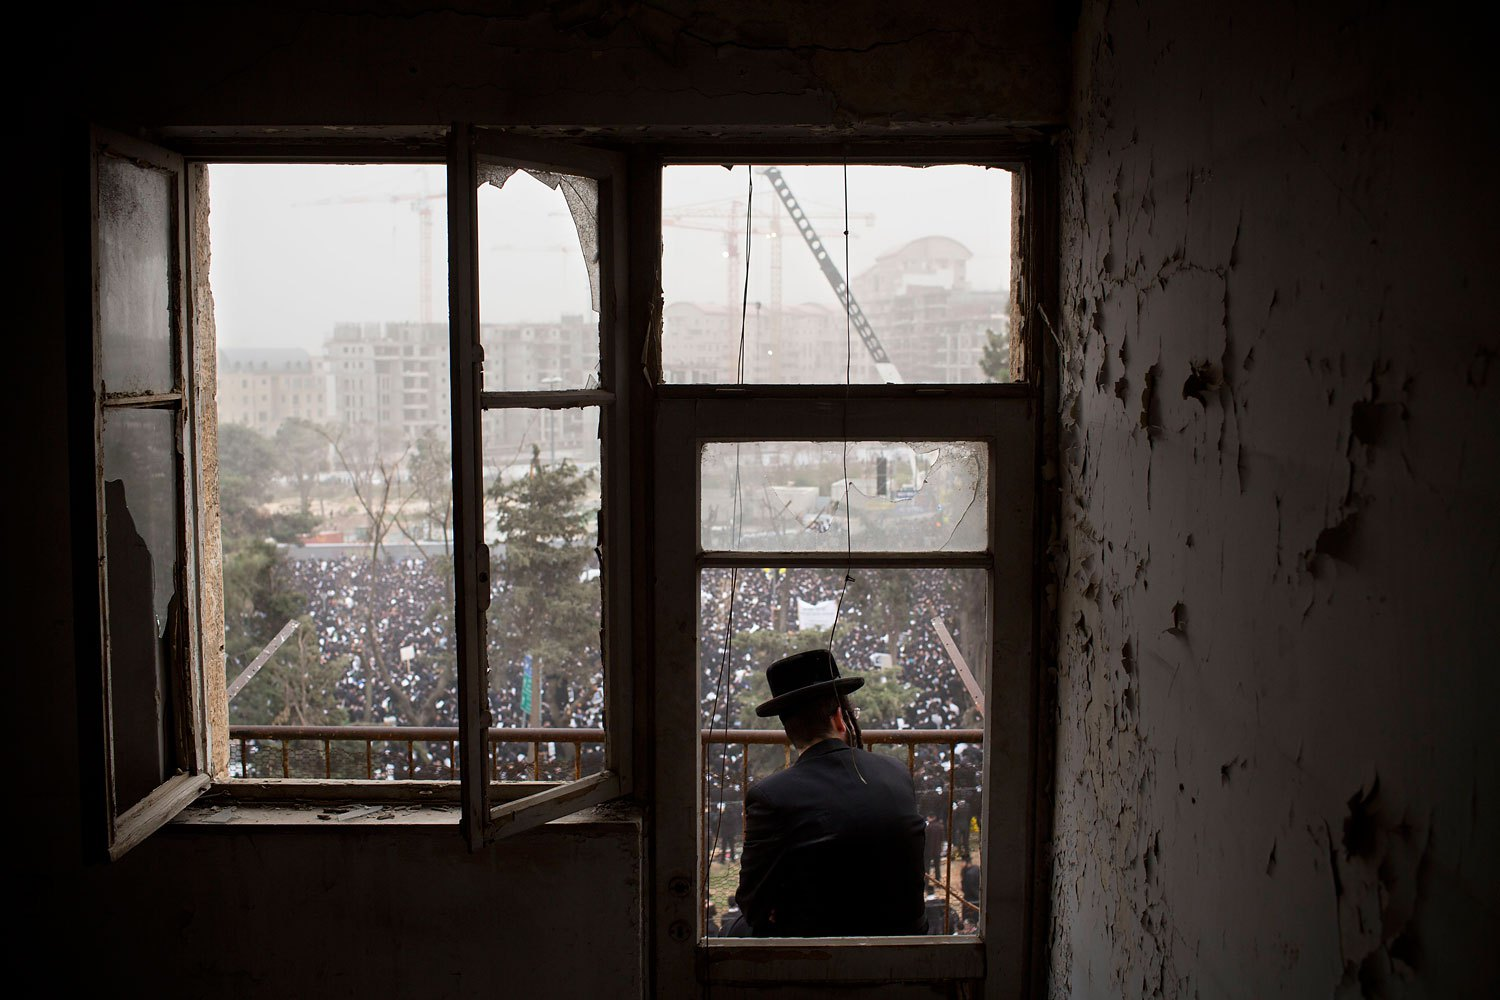 An ultra-Orthodox Jewish man watches from a balcony as hundreds of thousands of ultra-Orthodox Jews rally in a massive show of force against plans to force them to serve in the Israeli military, blocking roads and paralyzing the city of Jerusalem, March 2, 2014.